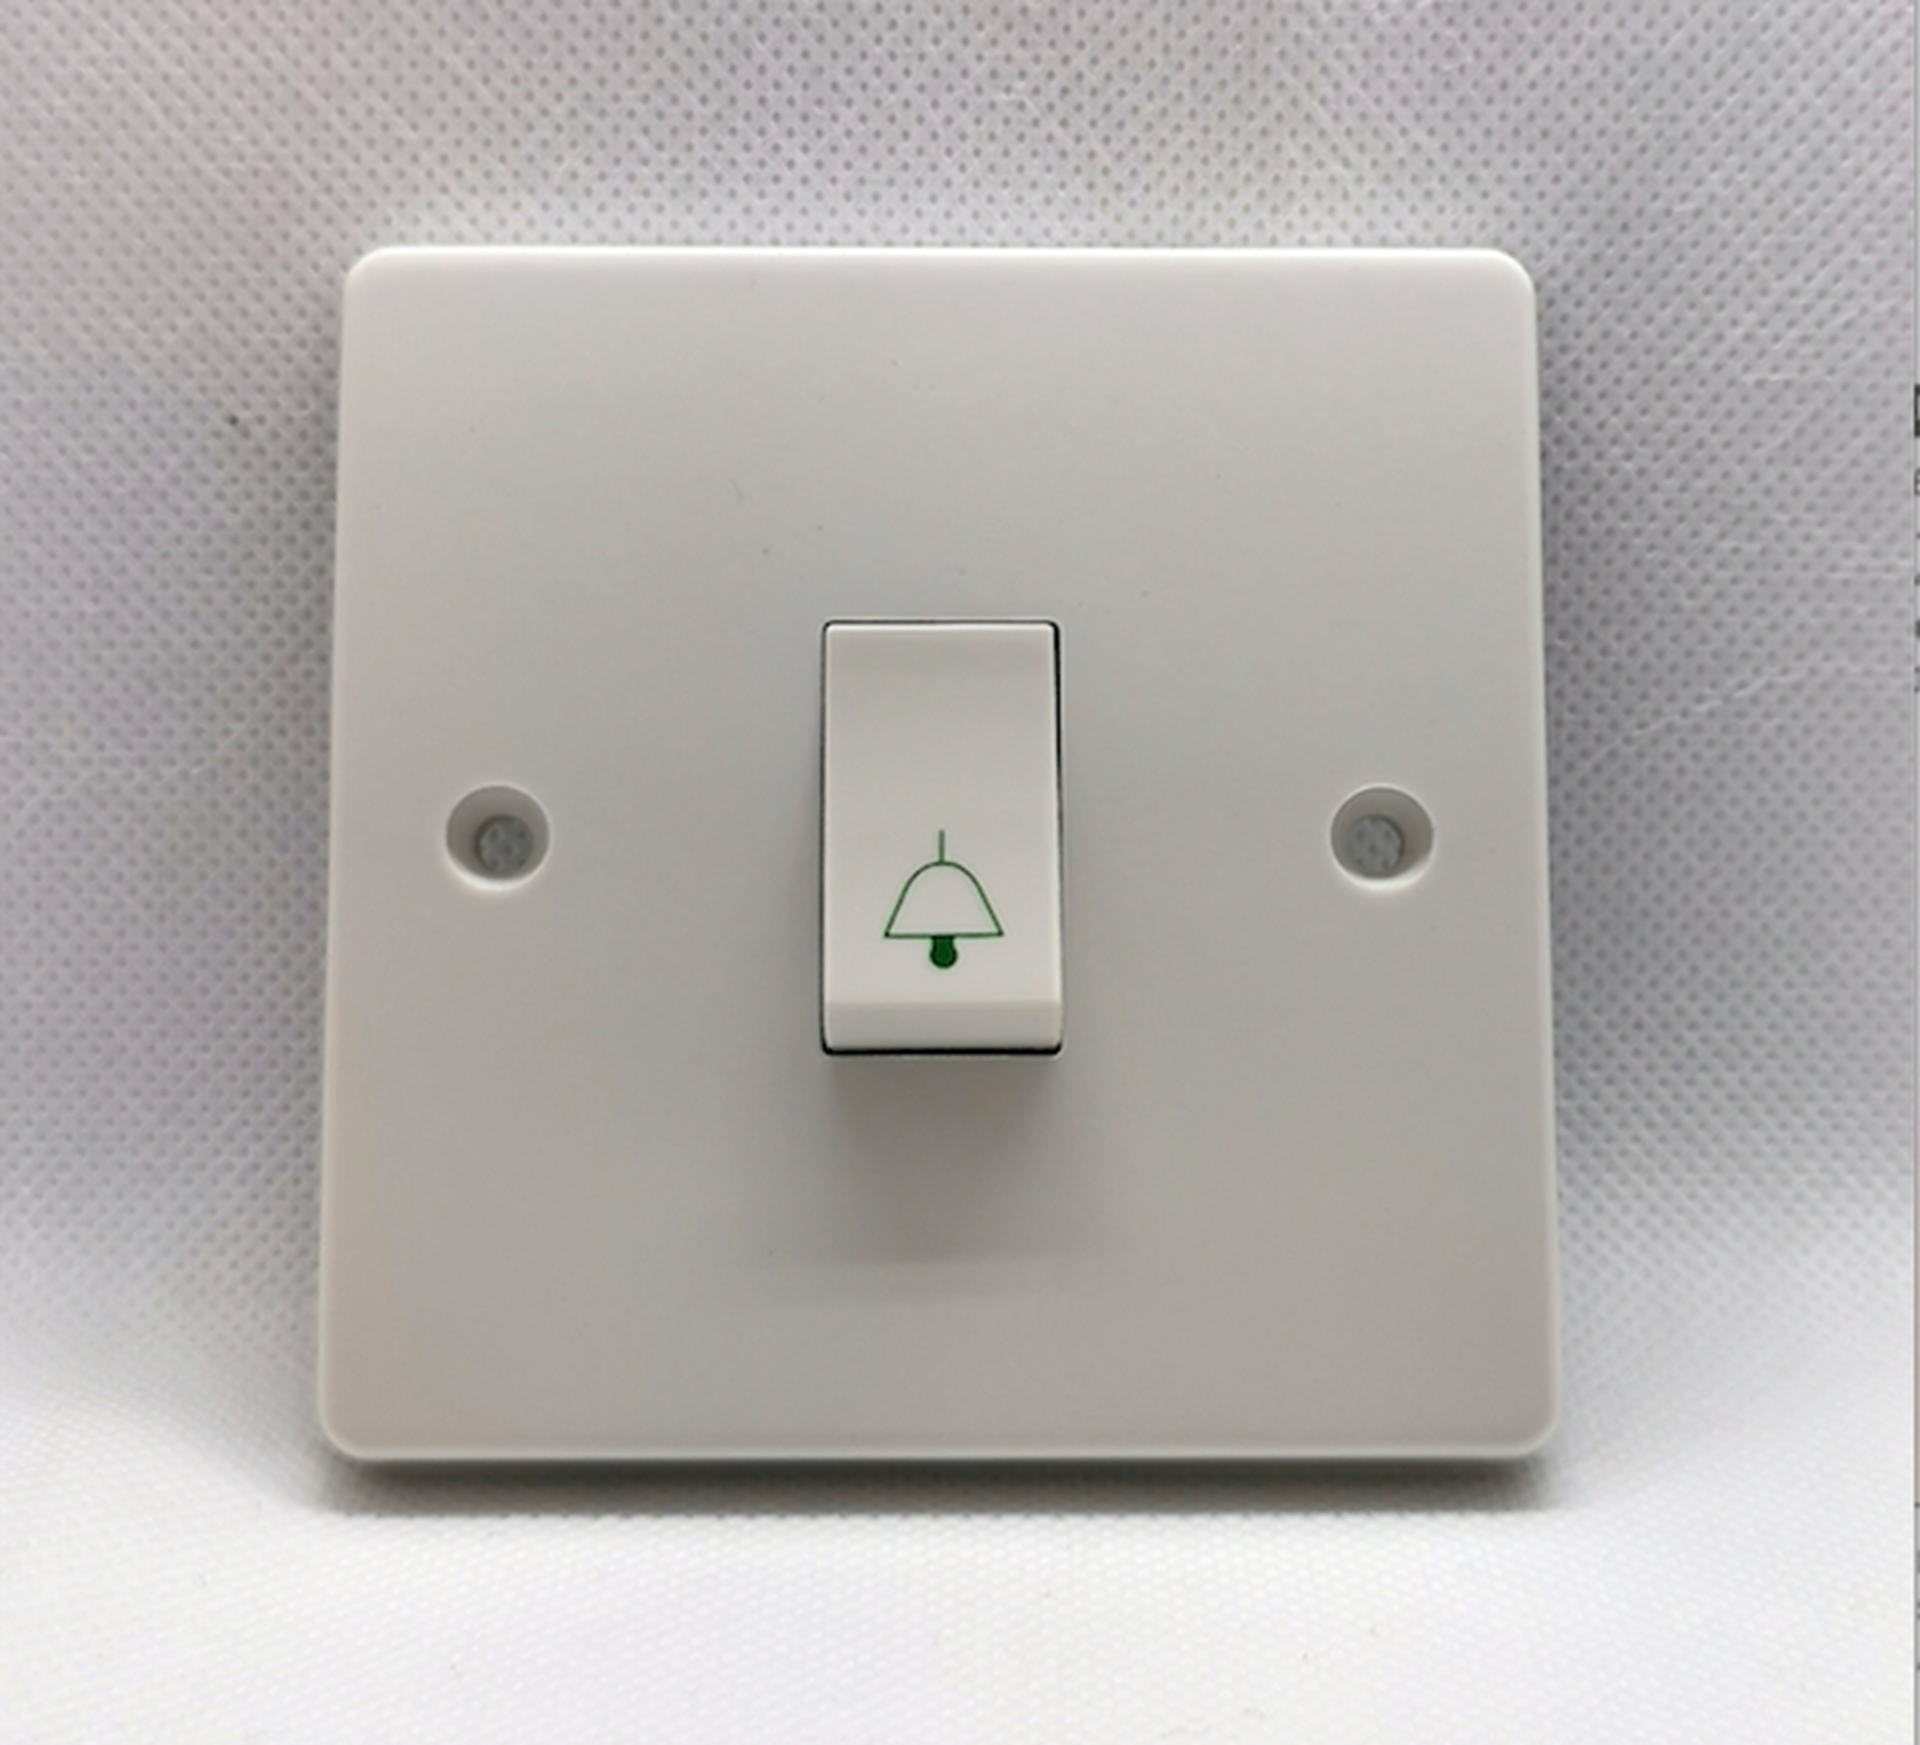 4096/B 6A 1 GANG 1 WAY RETRACTIVE SWITCH PRINTED WITH BELL SYMBOL